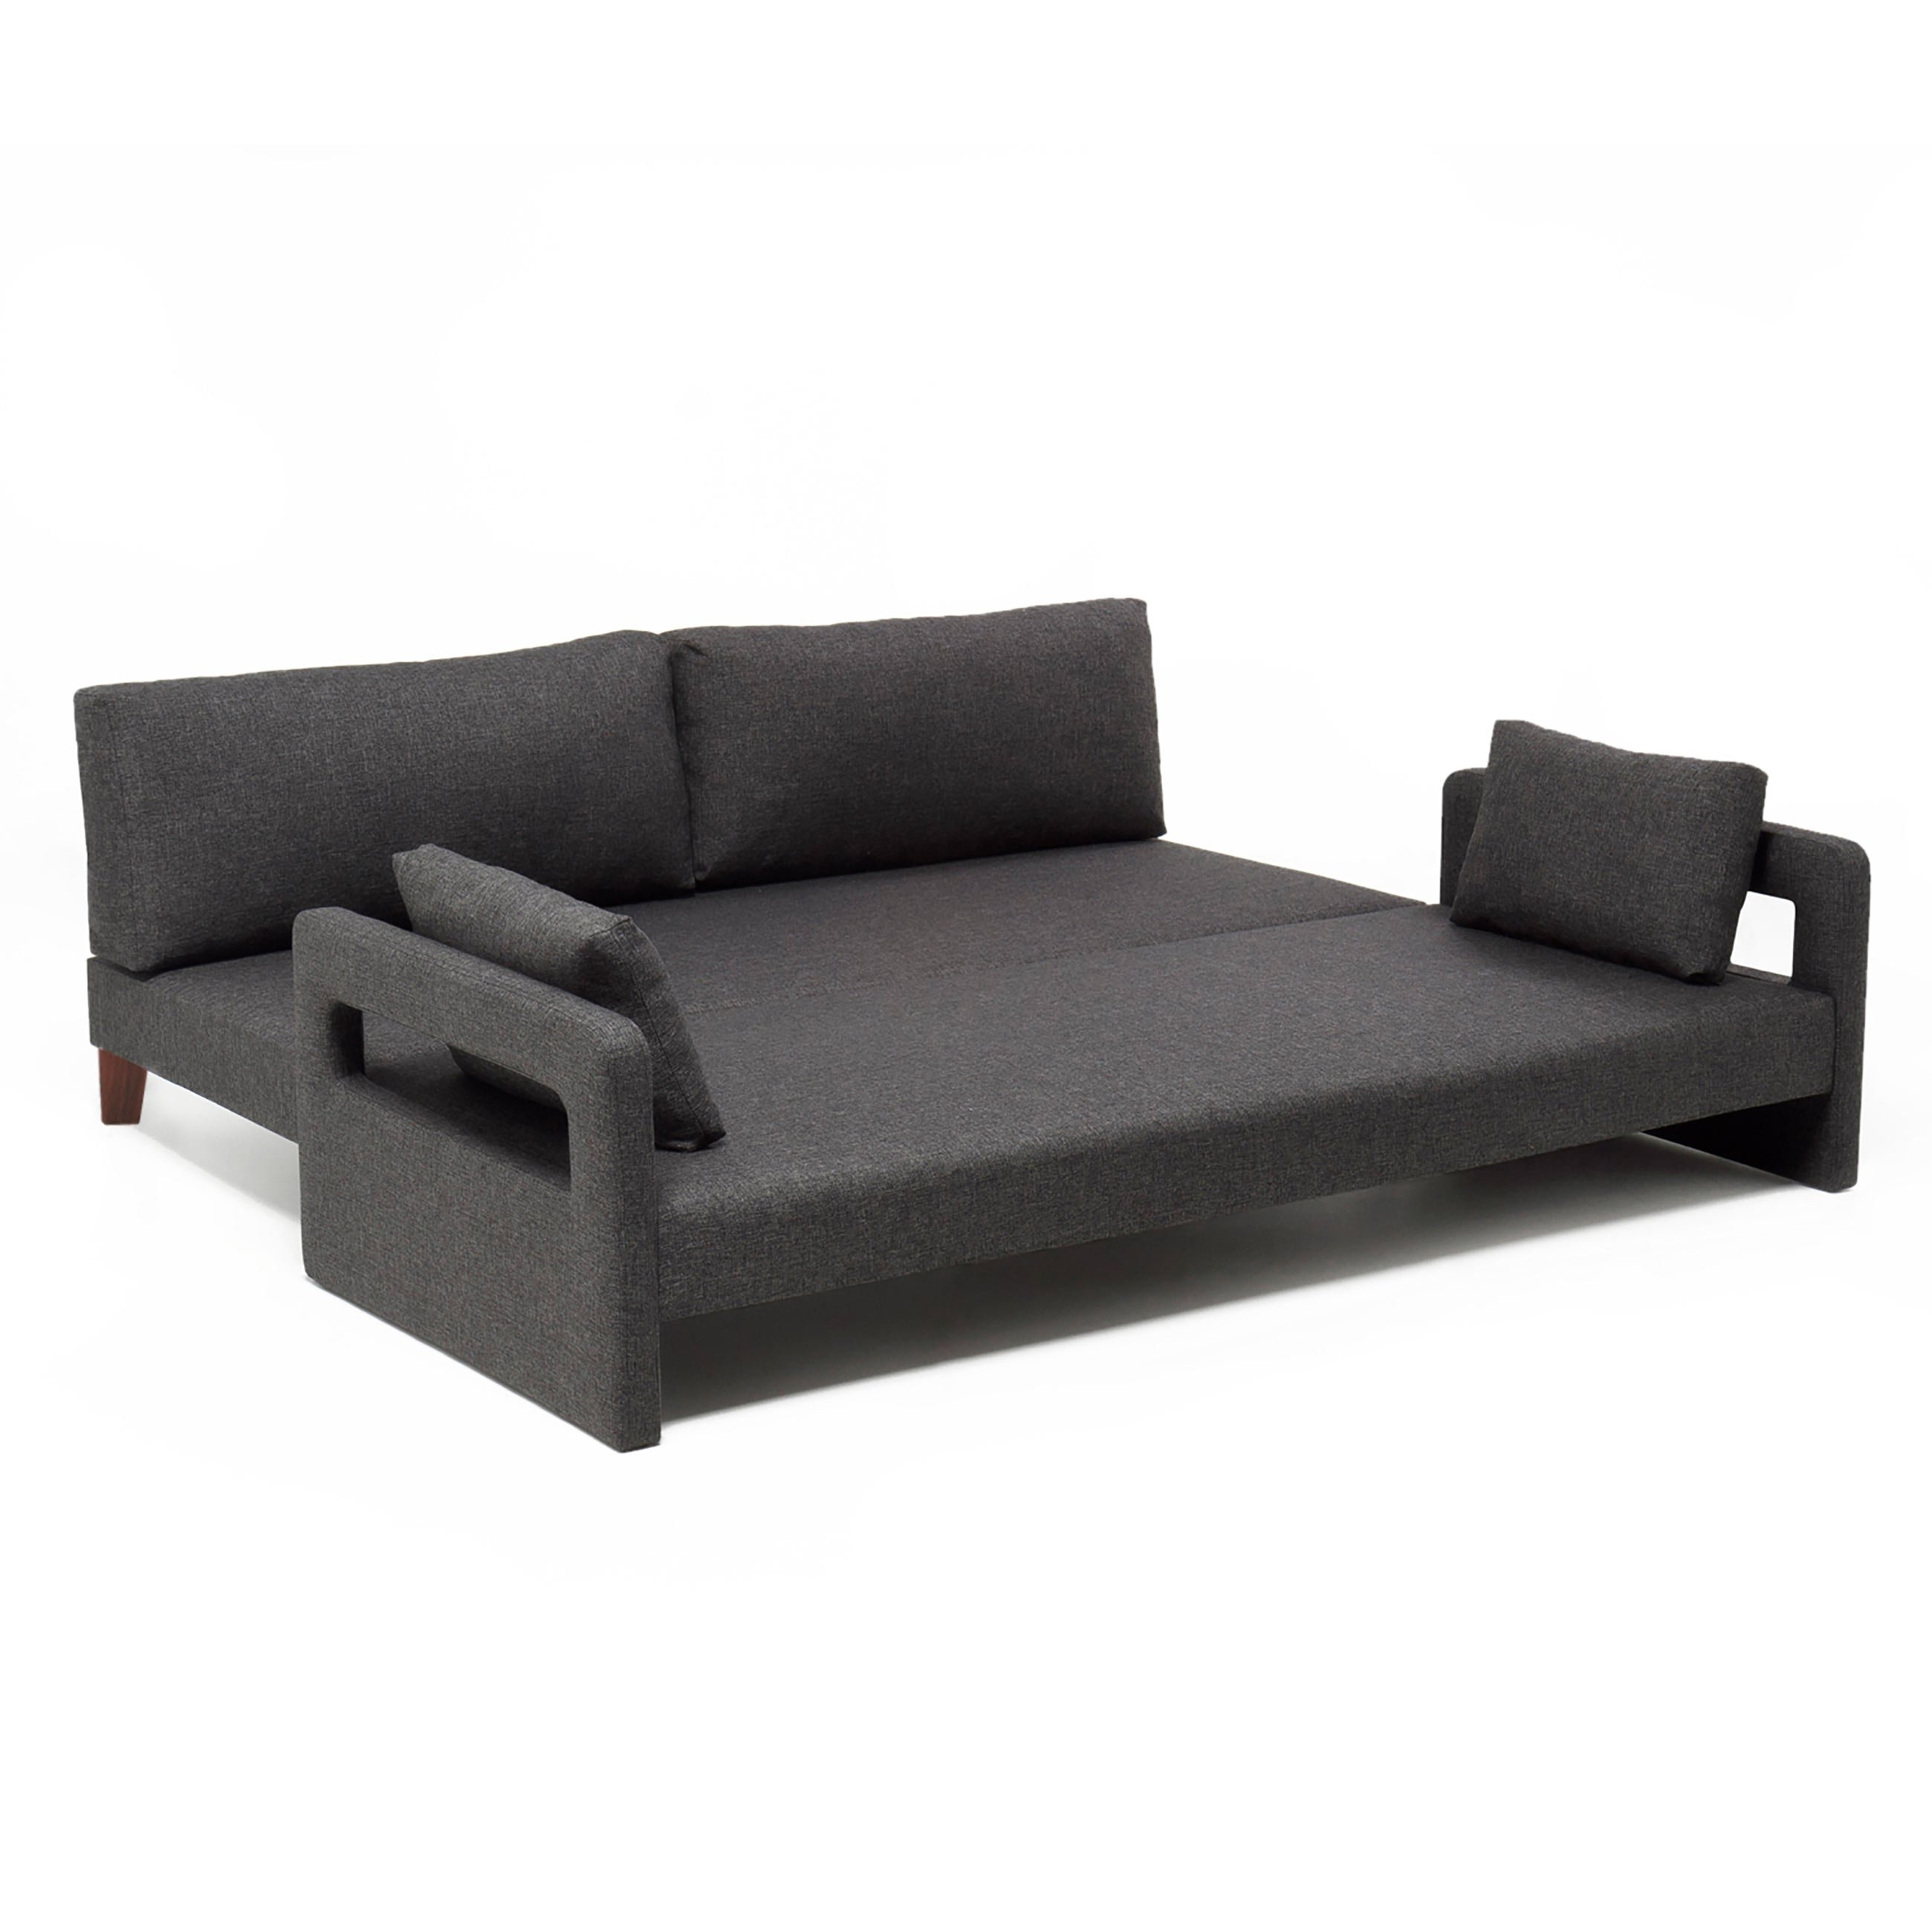 fort Gray Fabric Sofa Bed by Empire Furniture USA